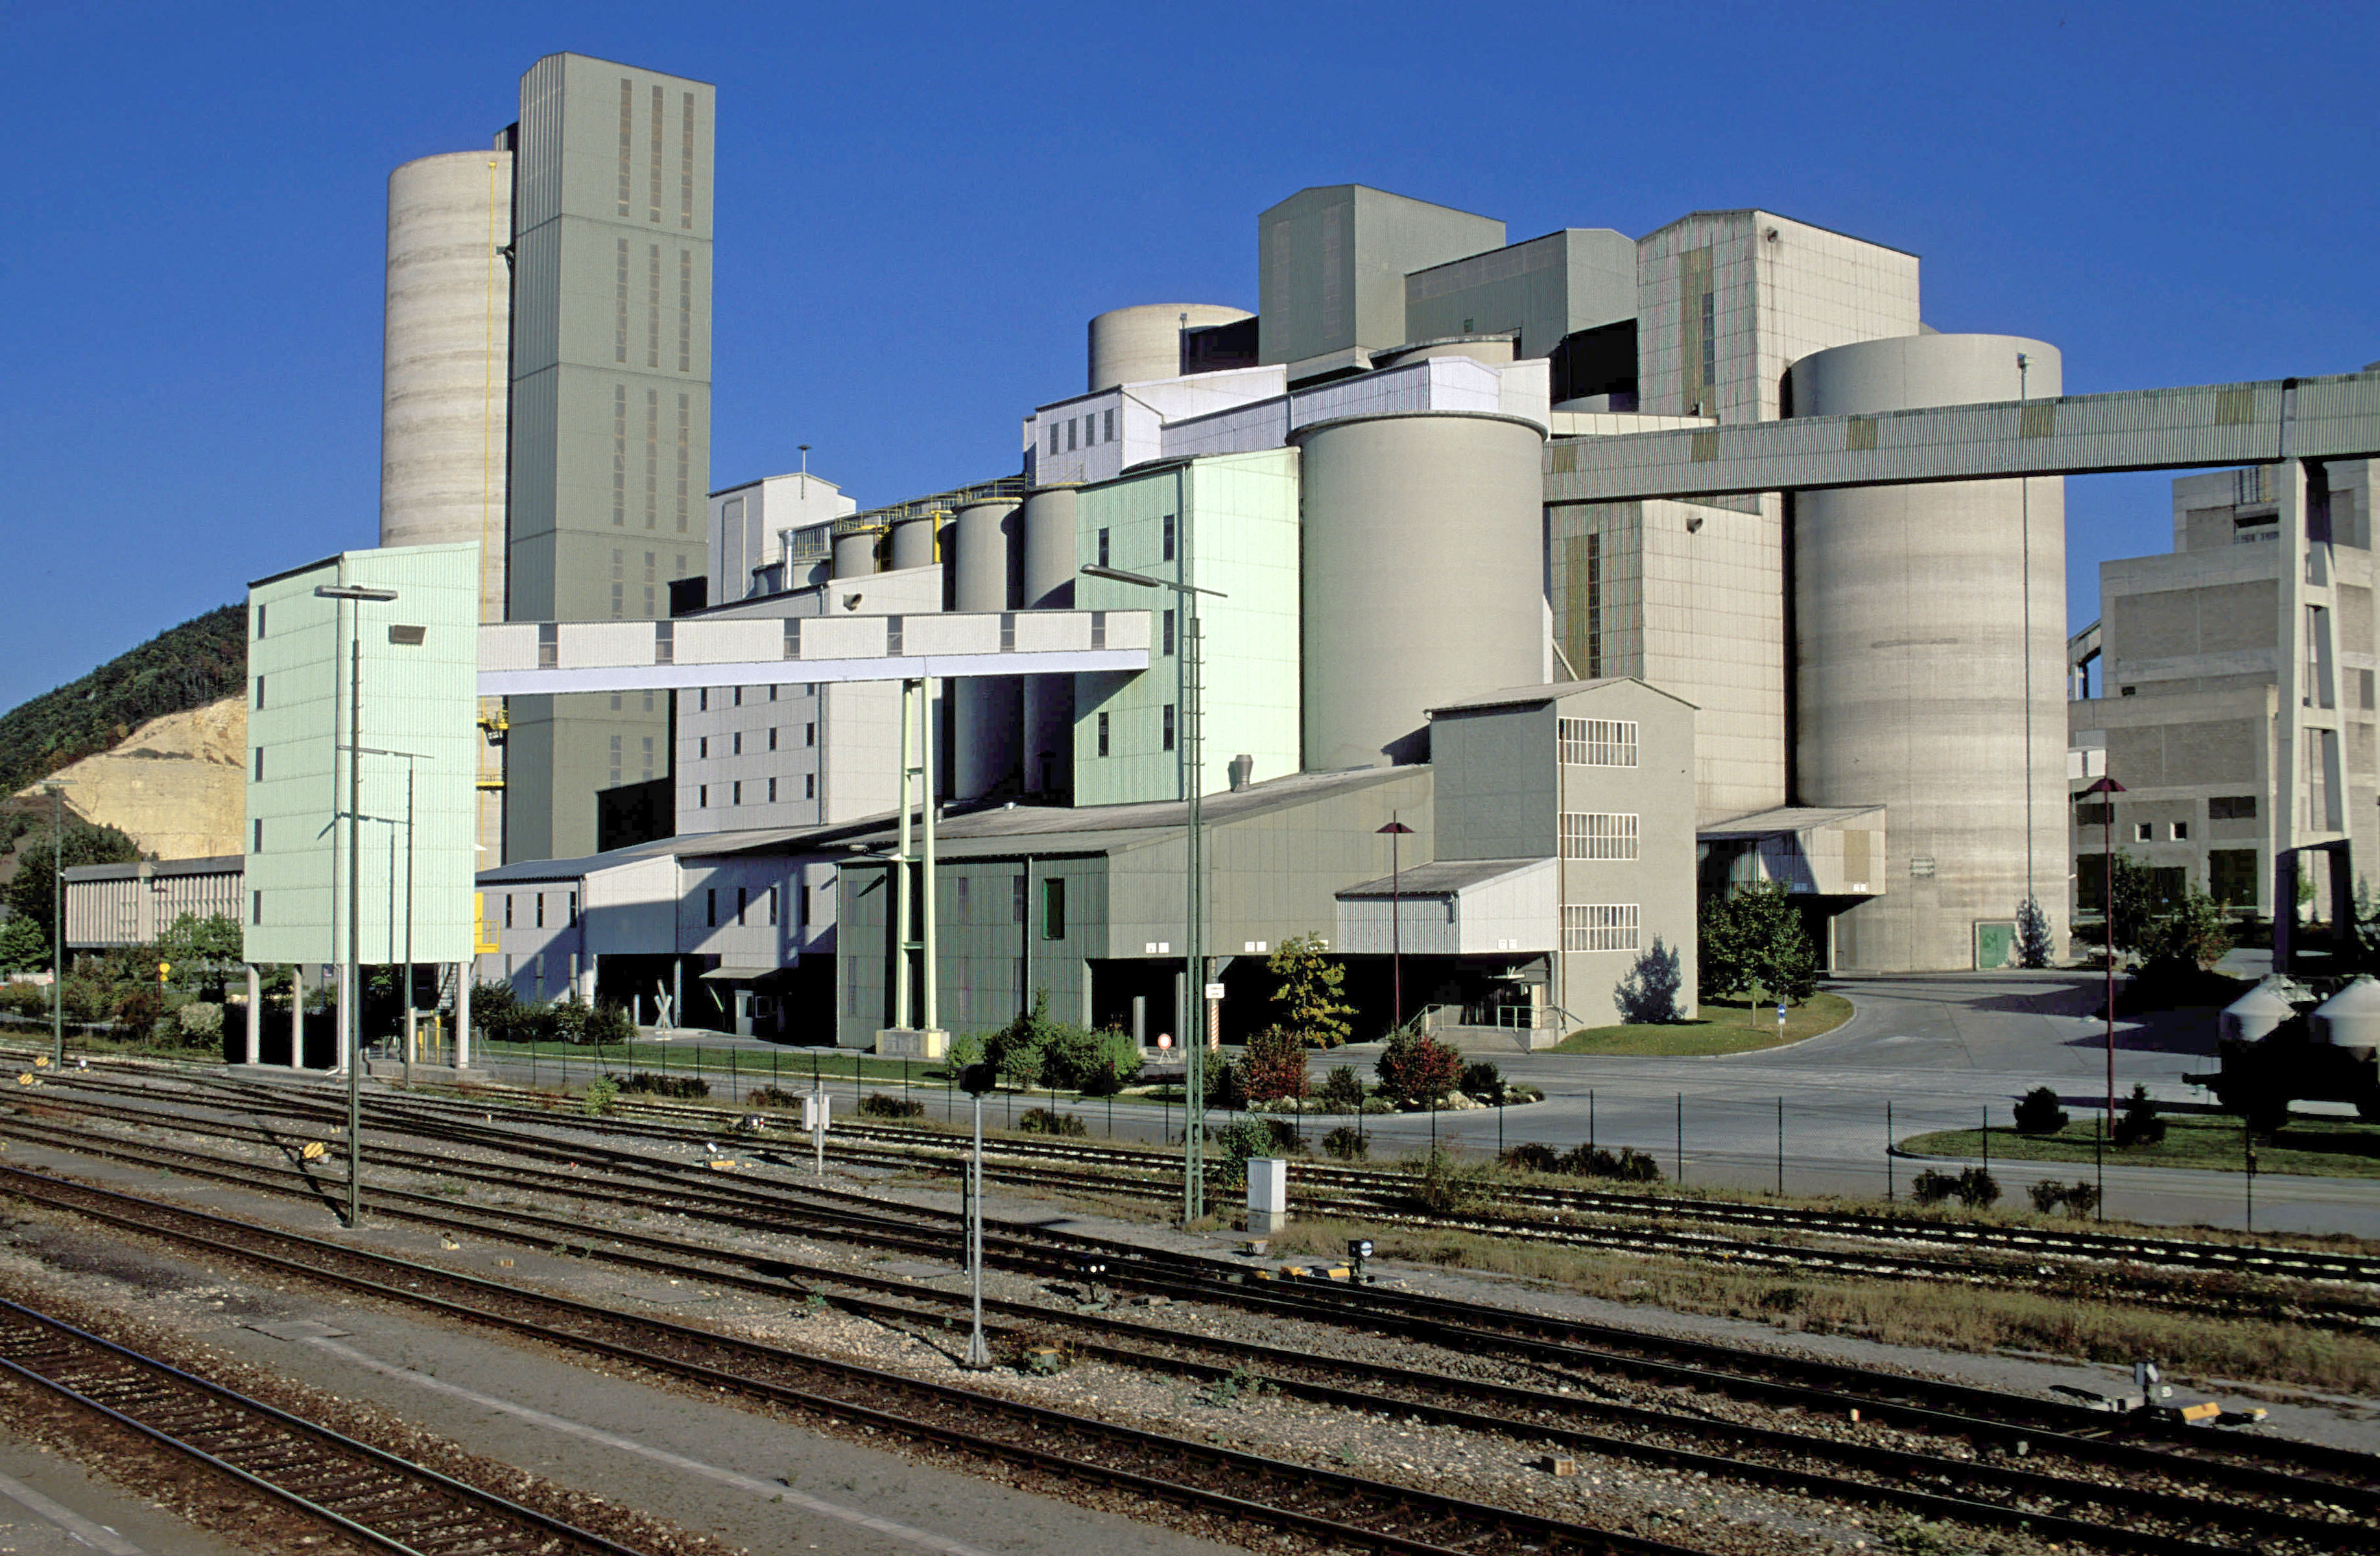 World S Largest Cement Plant : Big emitters in cement sector join forces to decarbonize